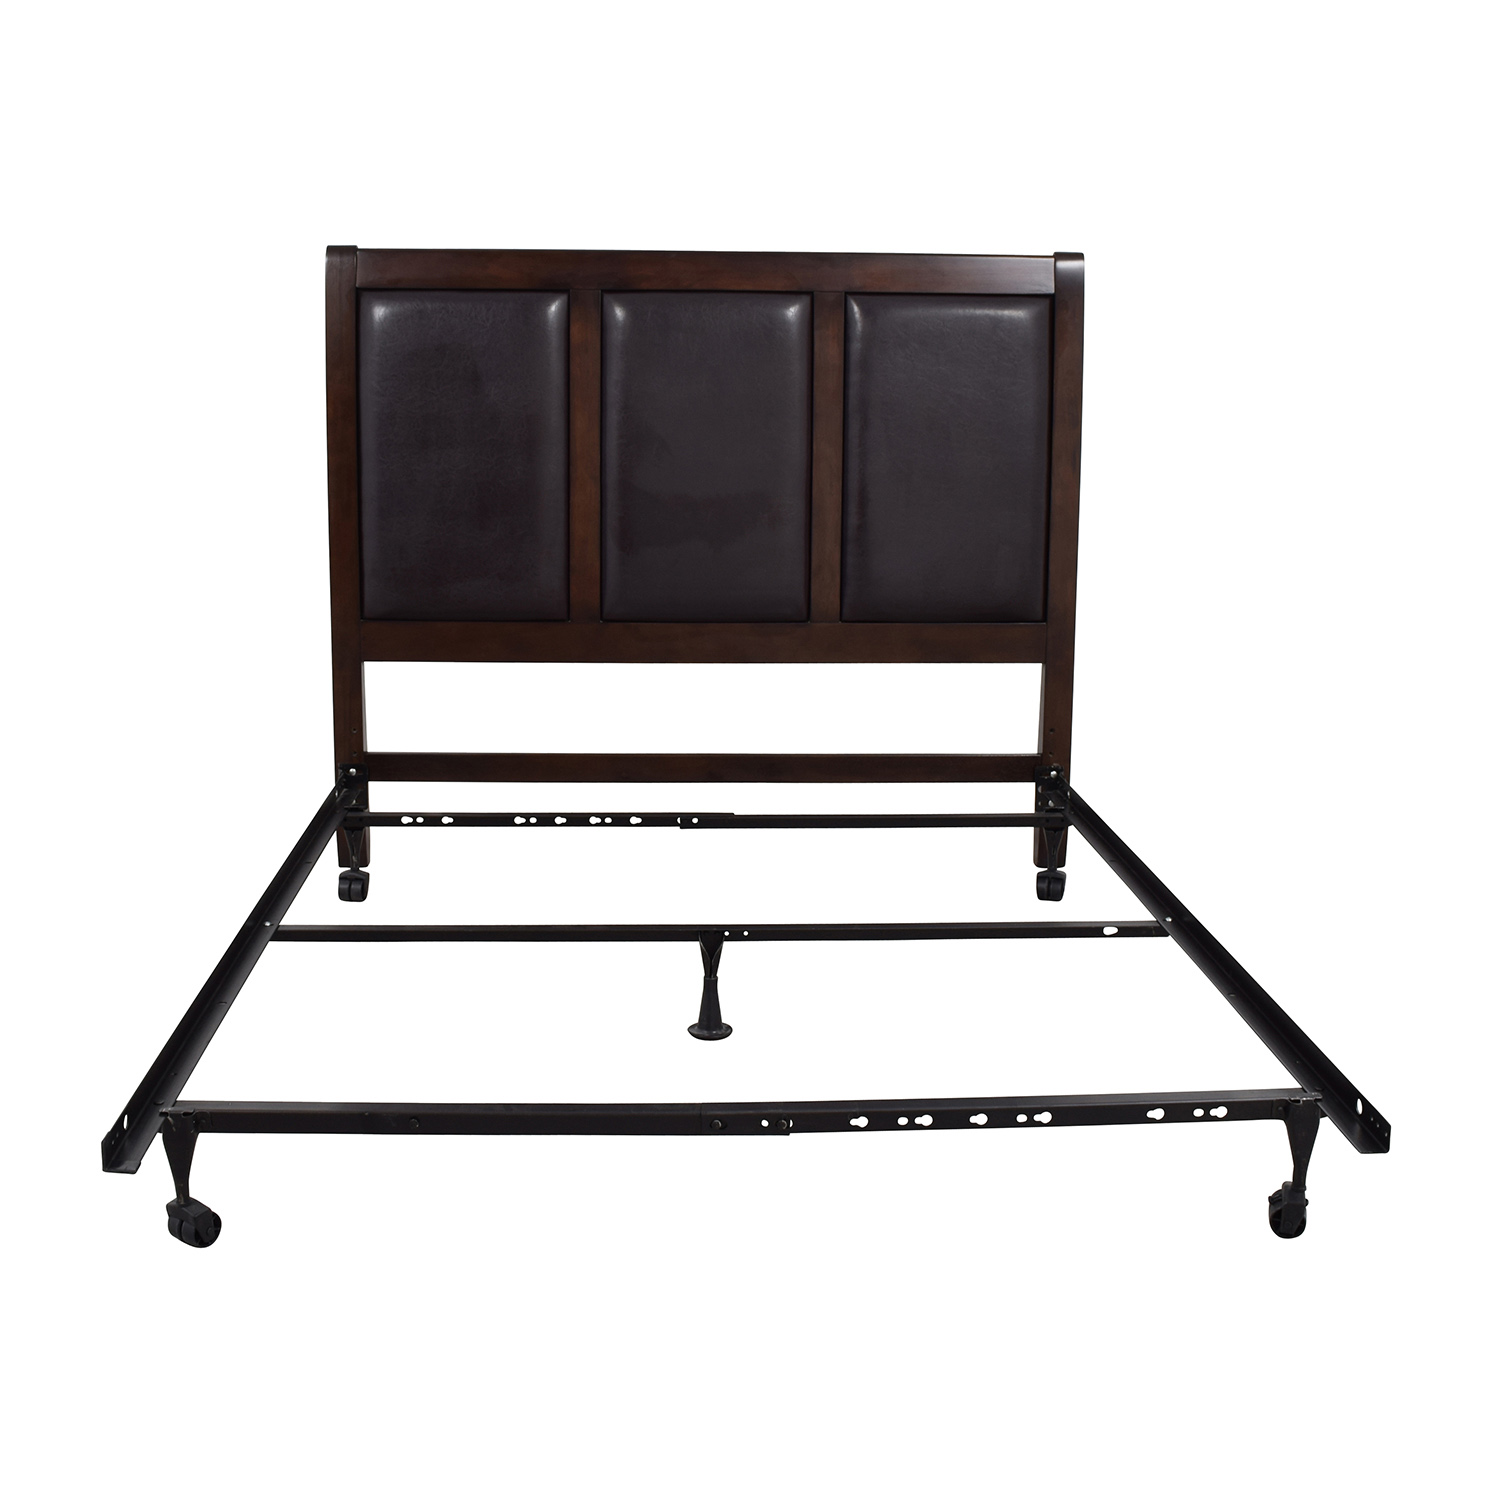 Lifestyle Solutions Lifestyle Solutions Leather Queen Bed Frame